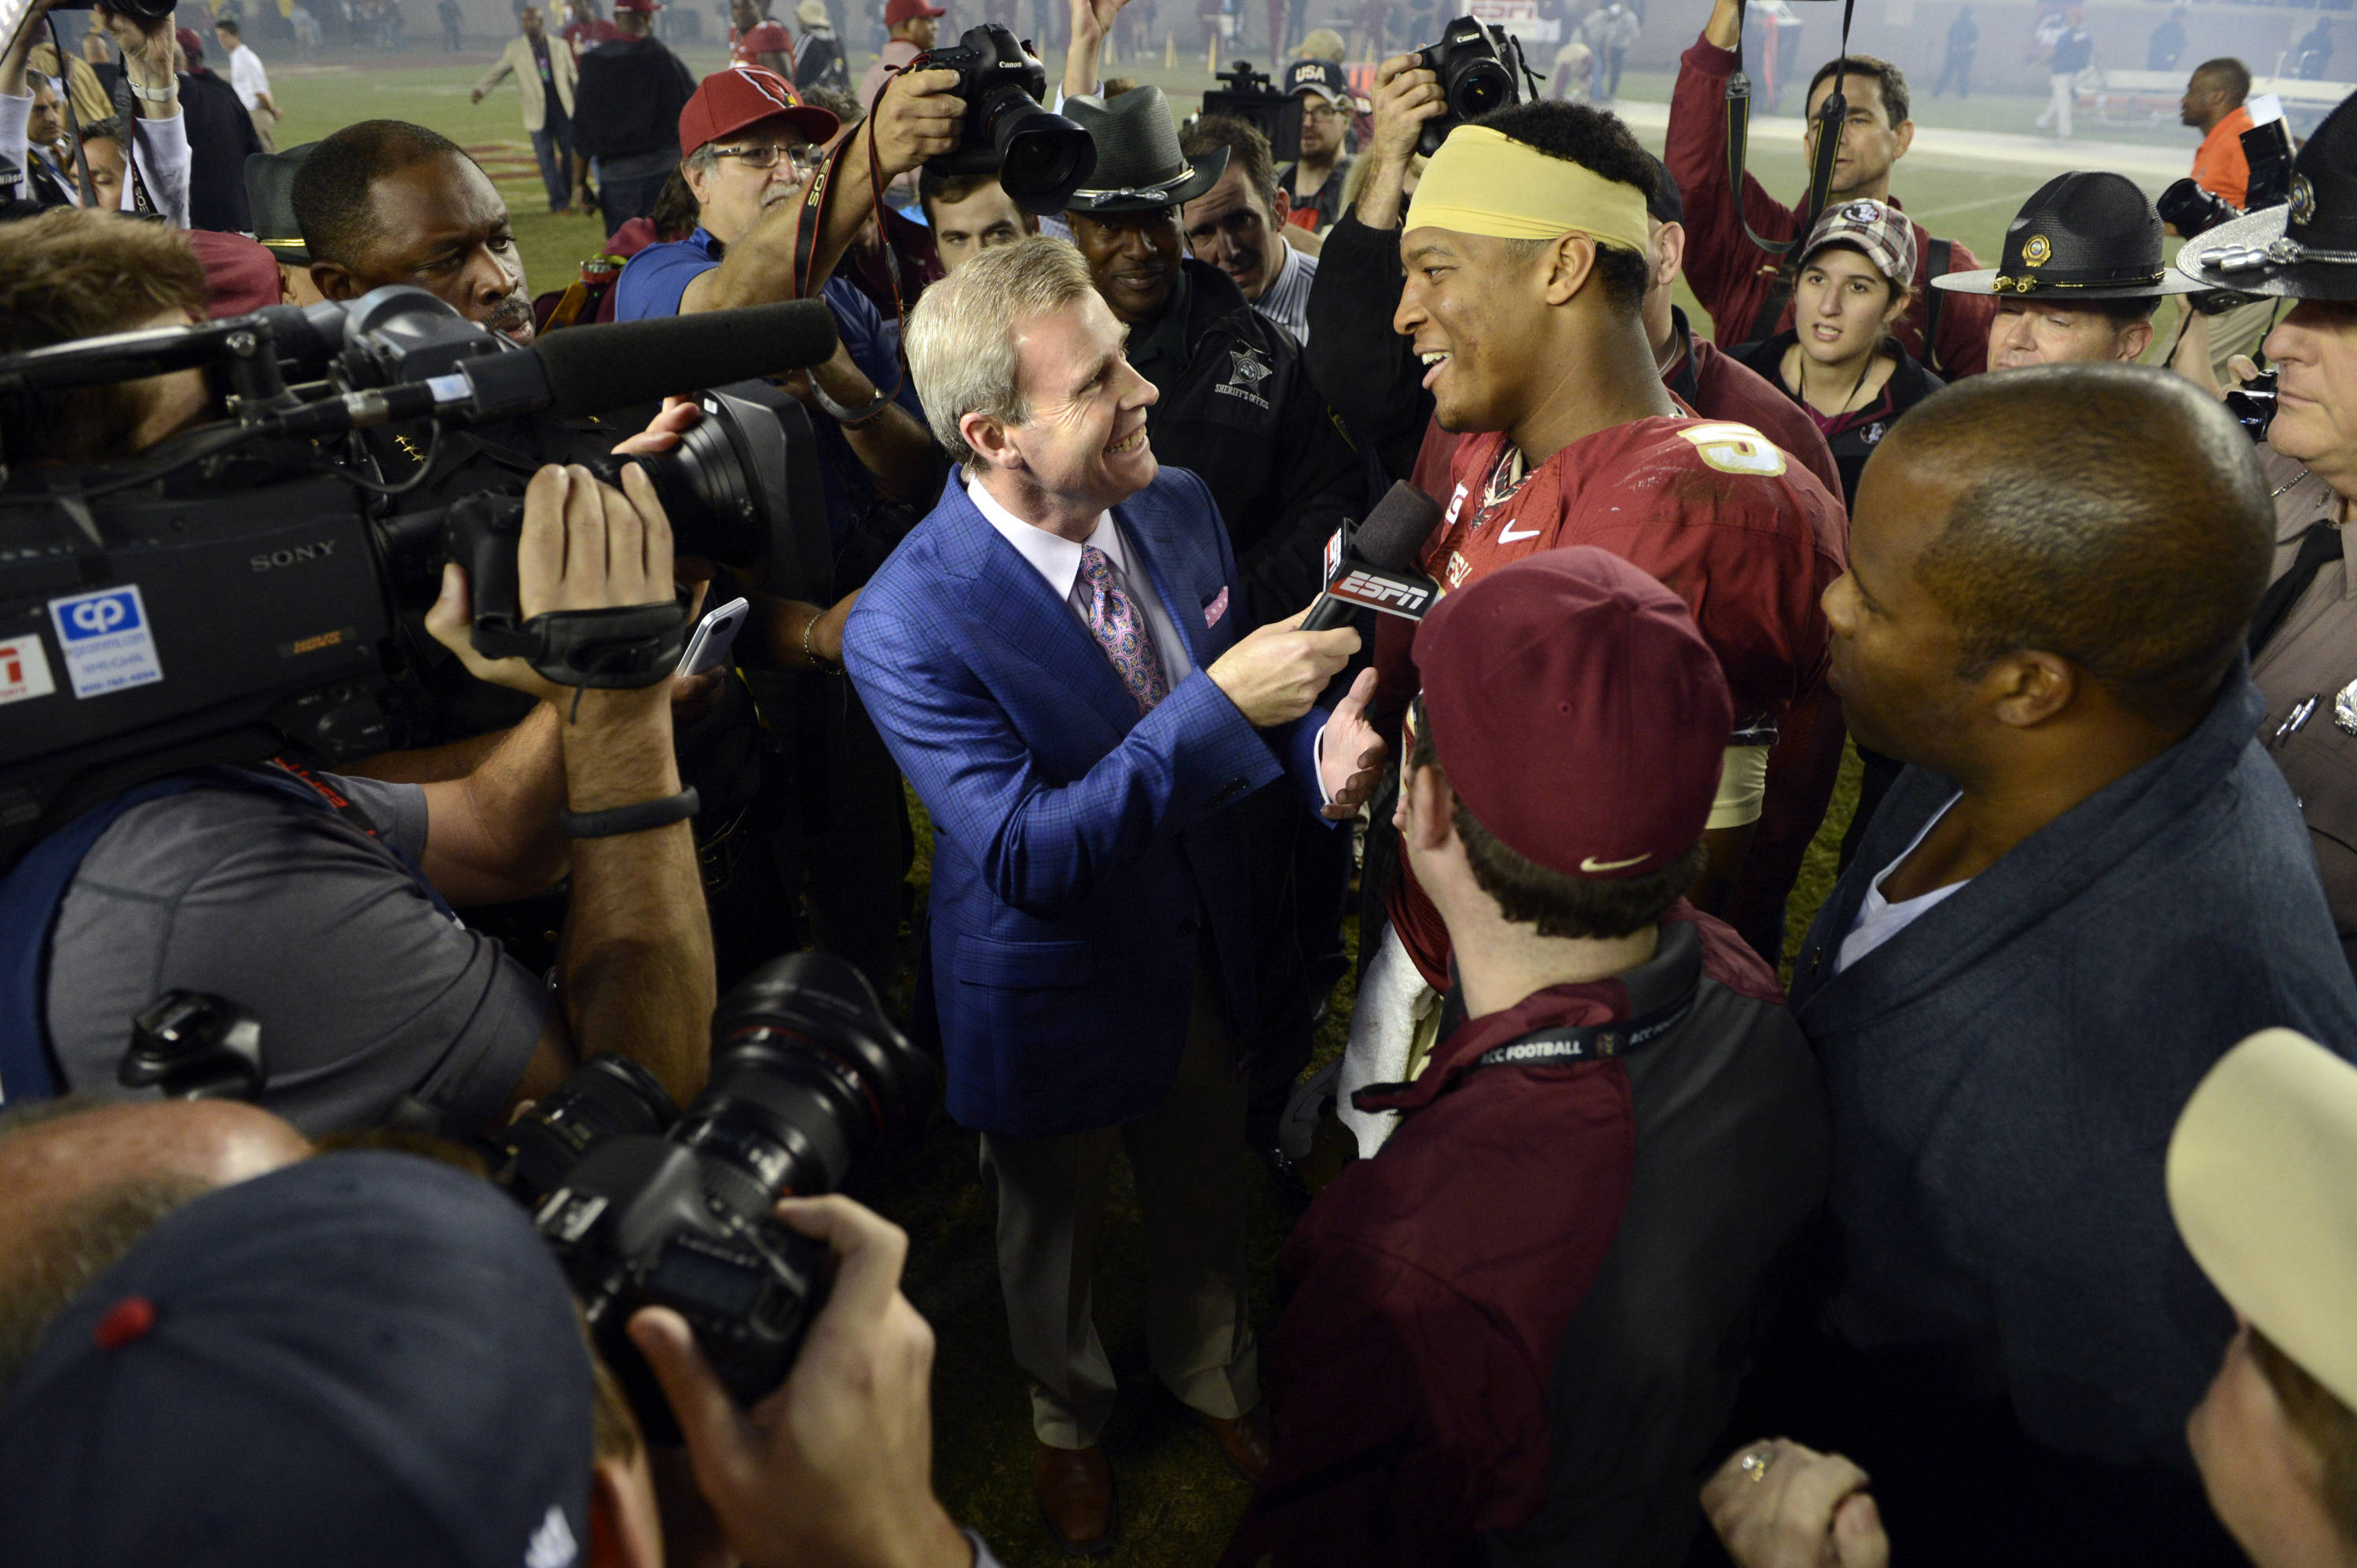 Florida State Seminoles quarterback Jameis Winston (5) does a end of game interview with ESPN after defeating the Miami Hurricanes 41-14 at Doak Campbell Stadium. Mandatory Credit: John David Mercer-USA TODAY Sports